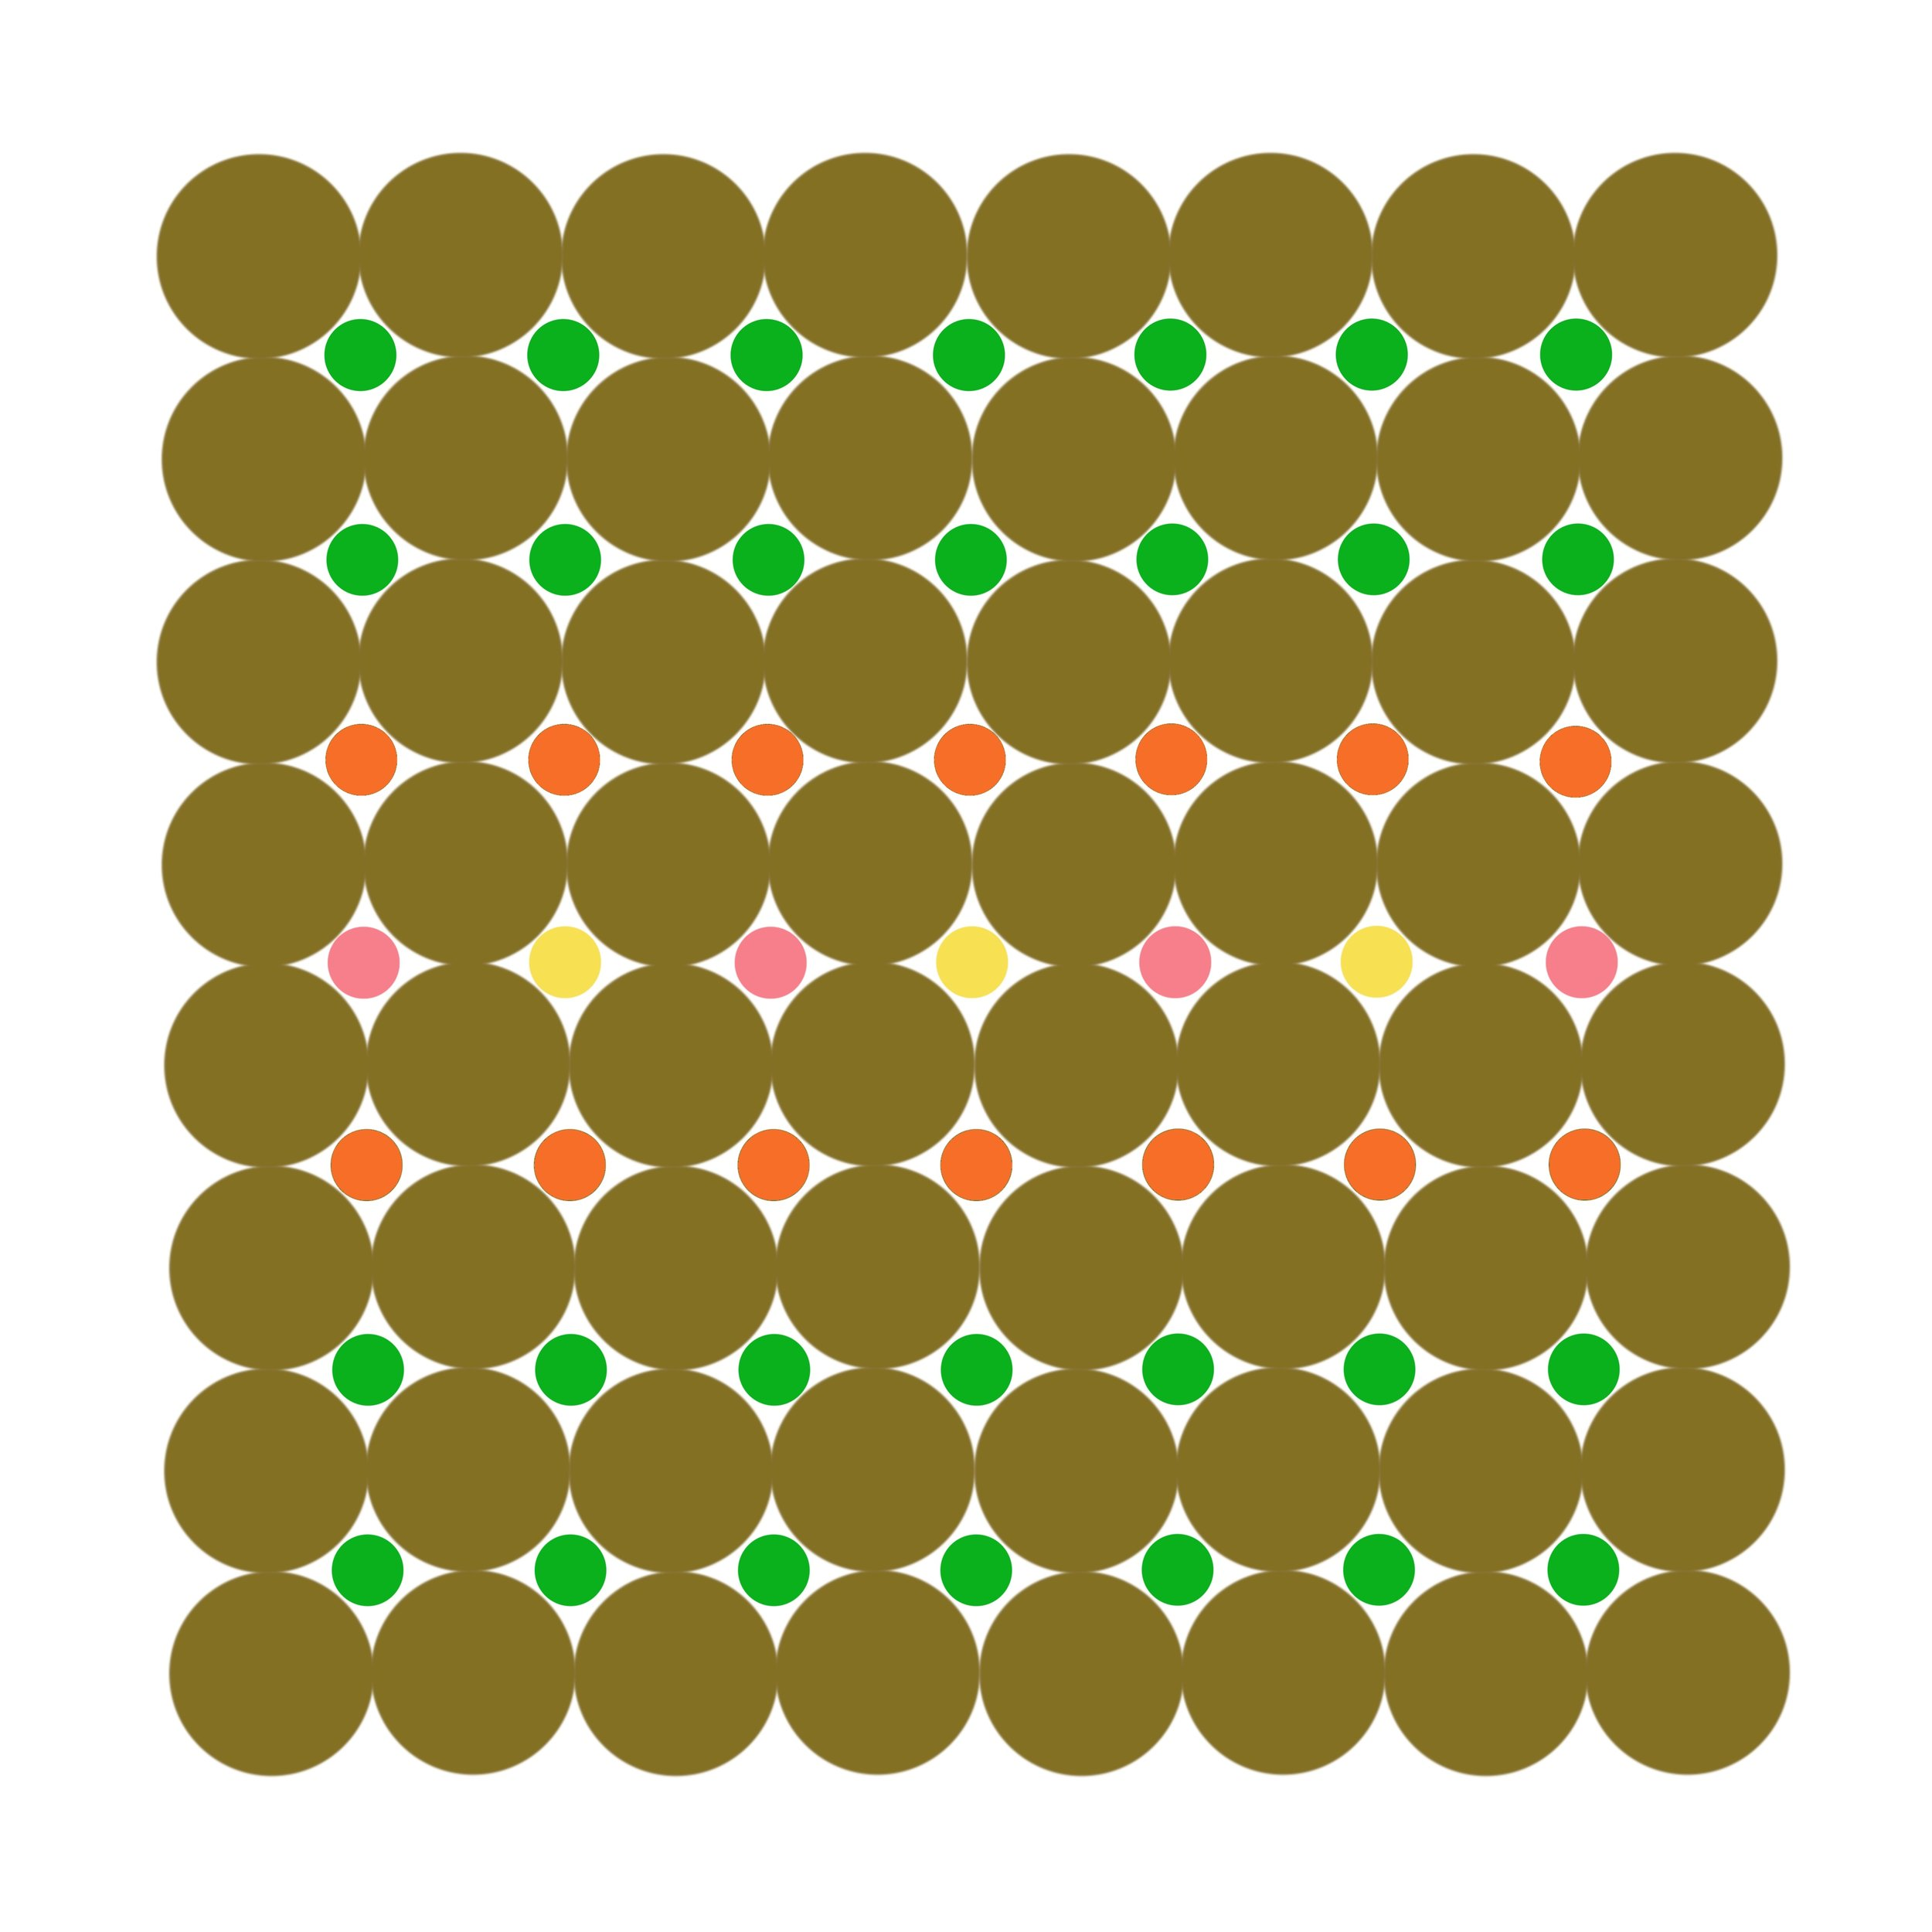 Dot Structure 6 - Olive